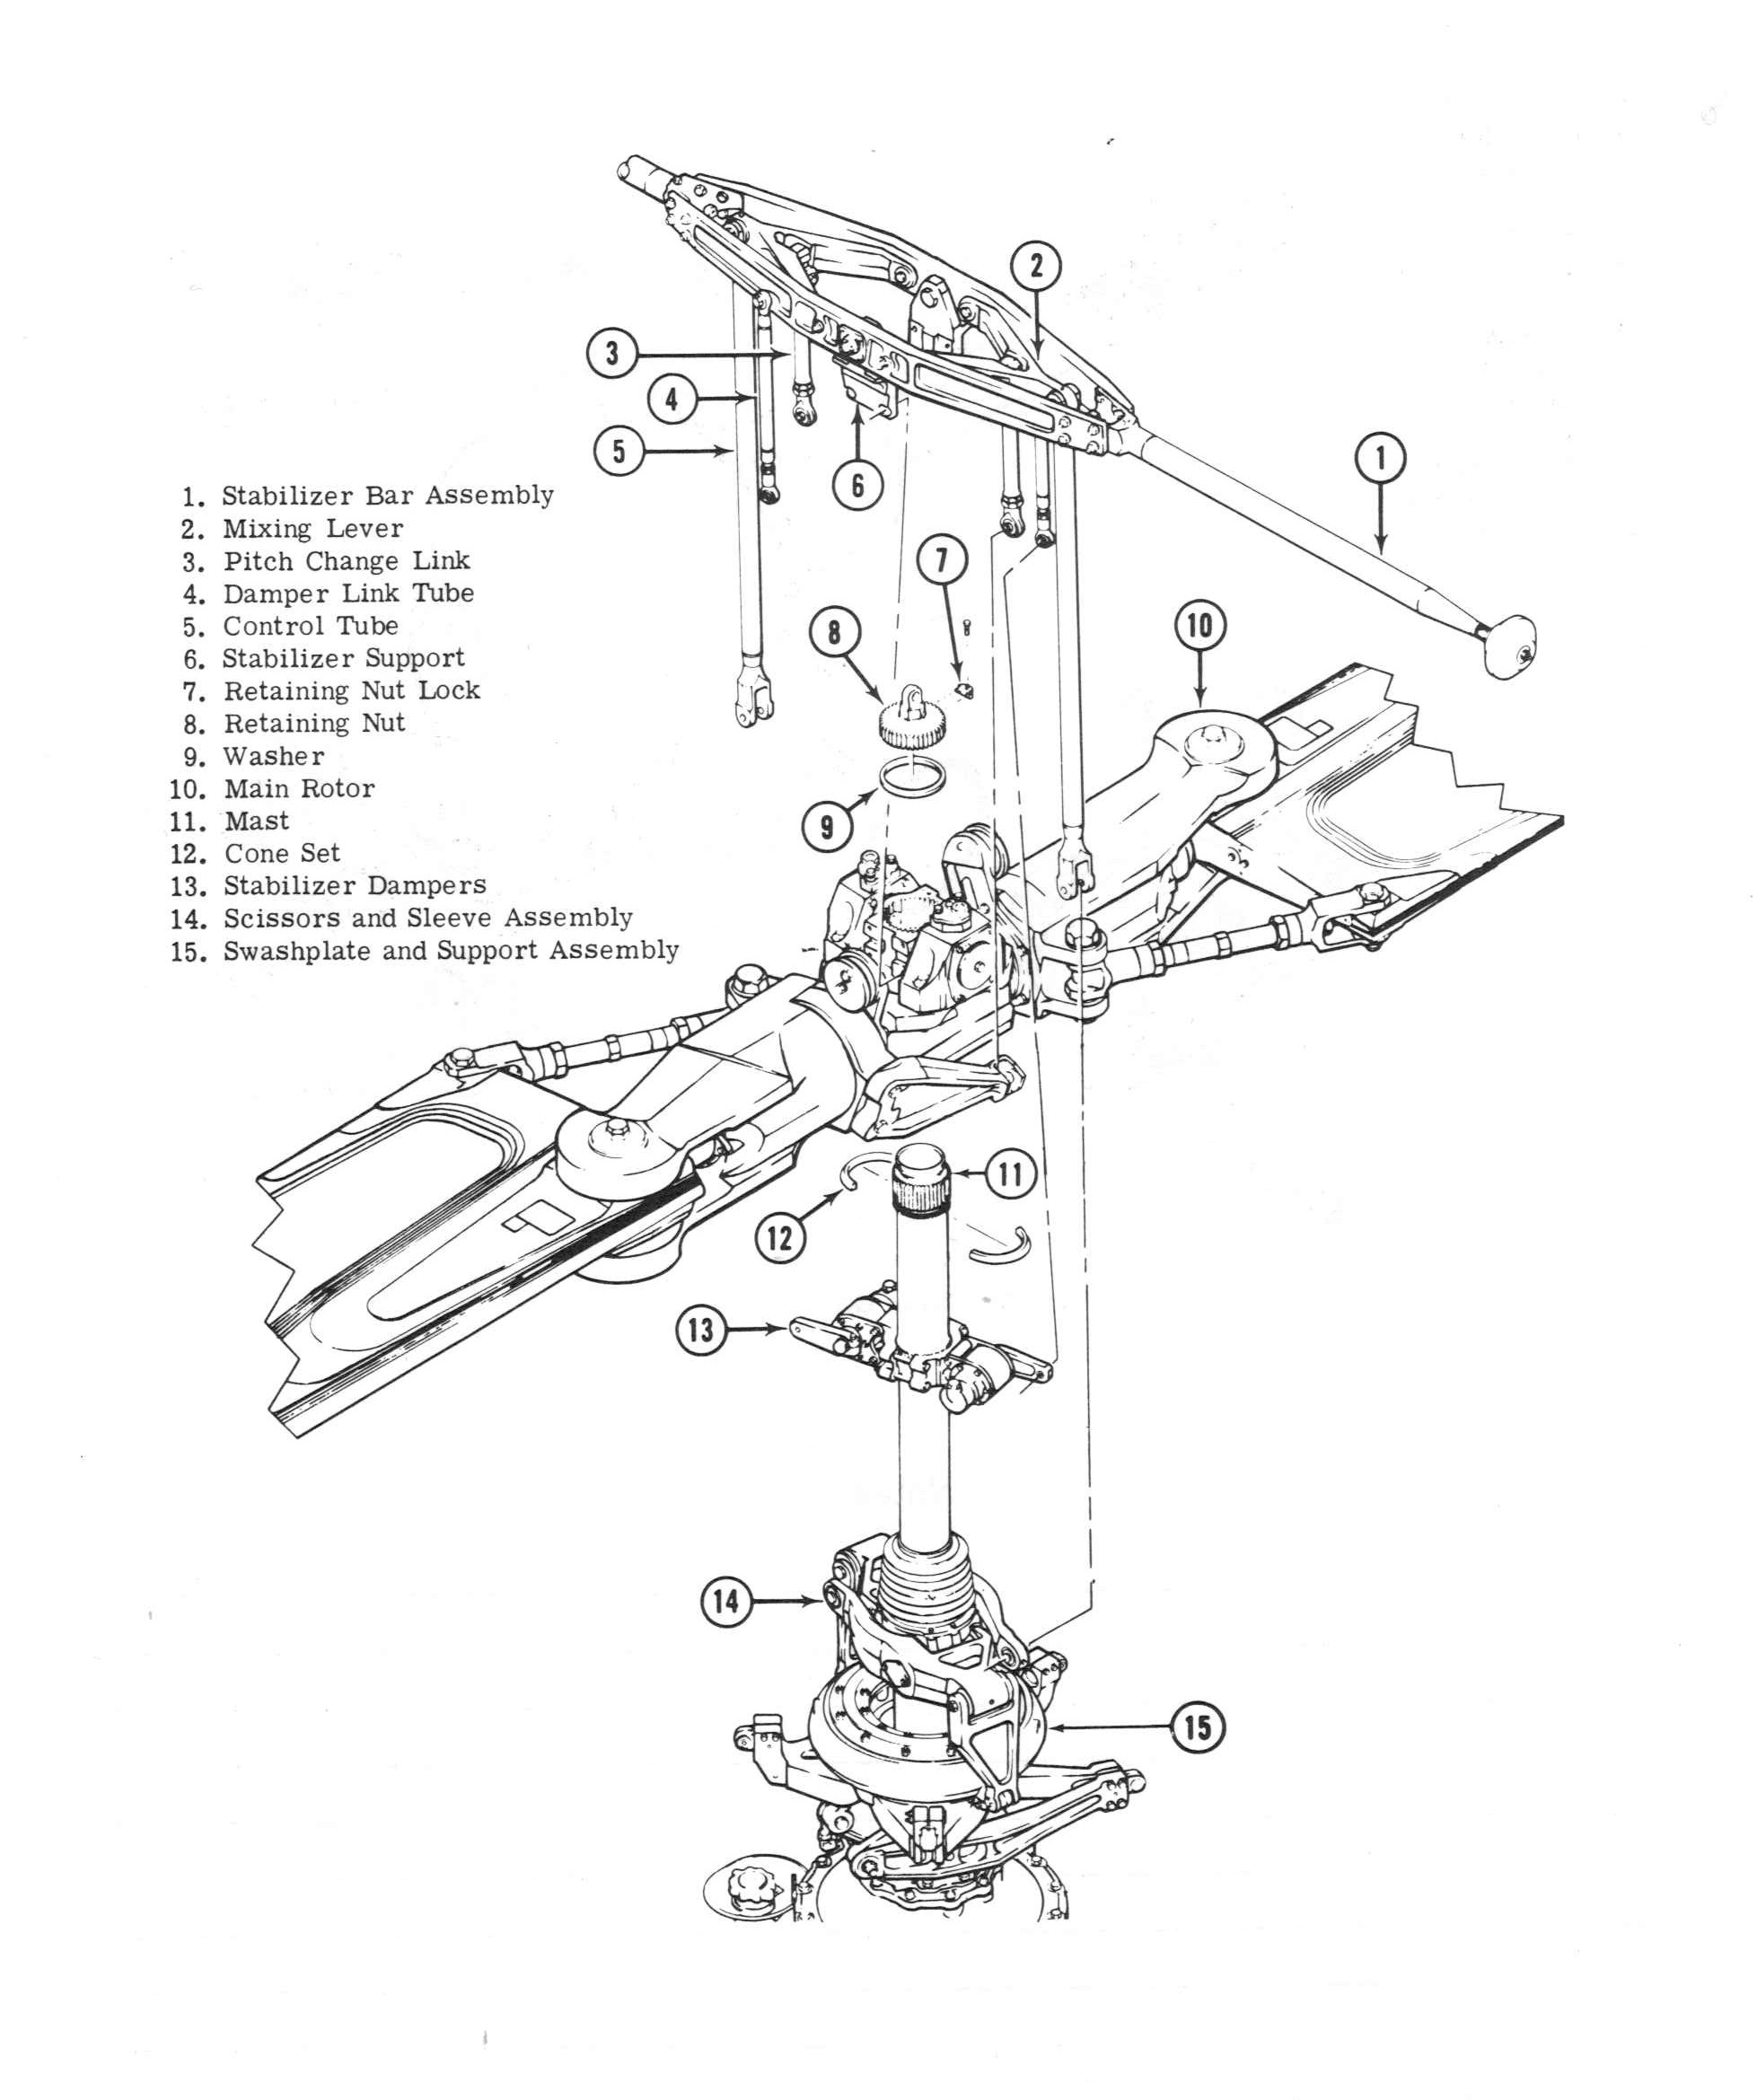 Bell Model 205a 1 Image Downloads Free Download Inf 2 Wiring Diagrams Main Rotor Installation